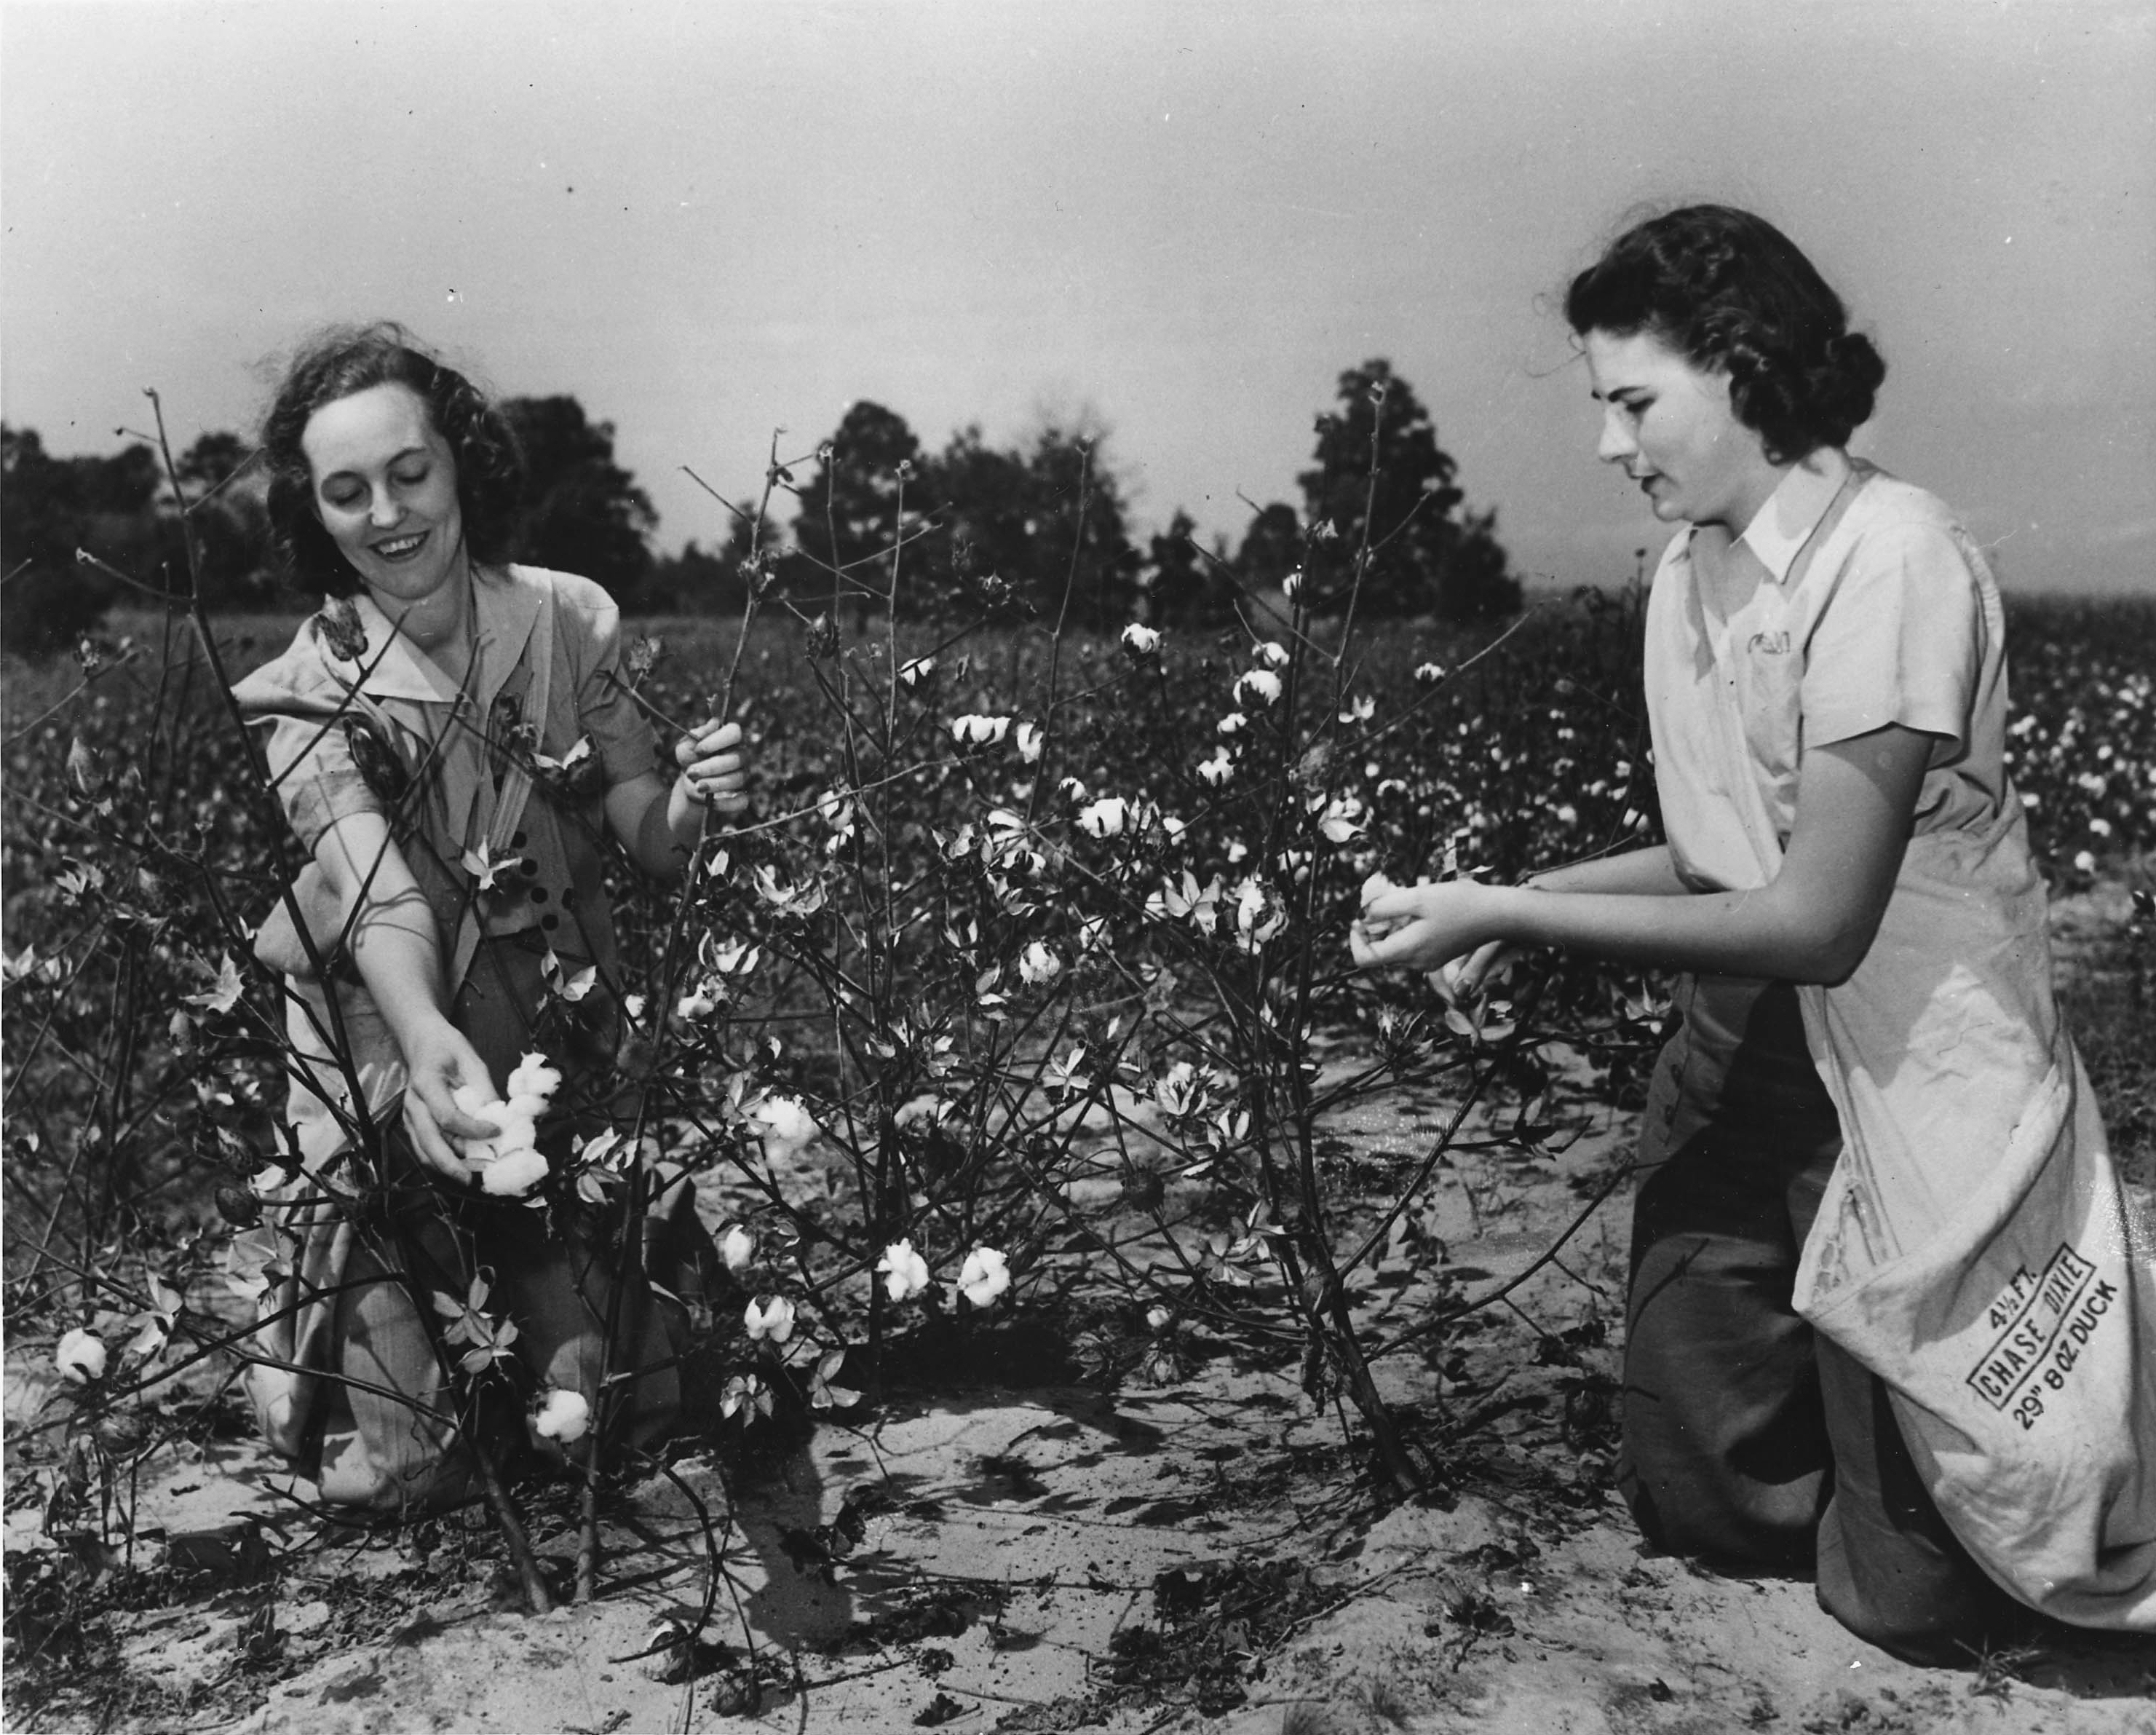 Women Pick Cotton for U.S. Crop Corps